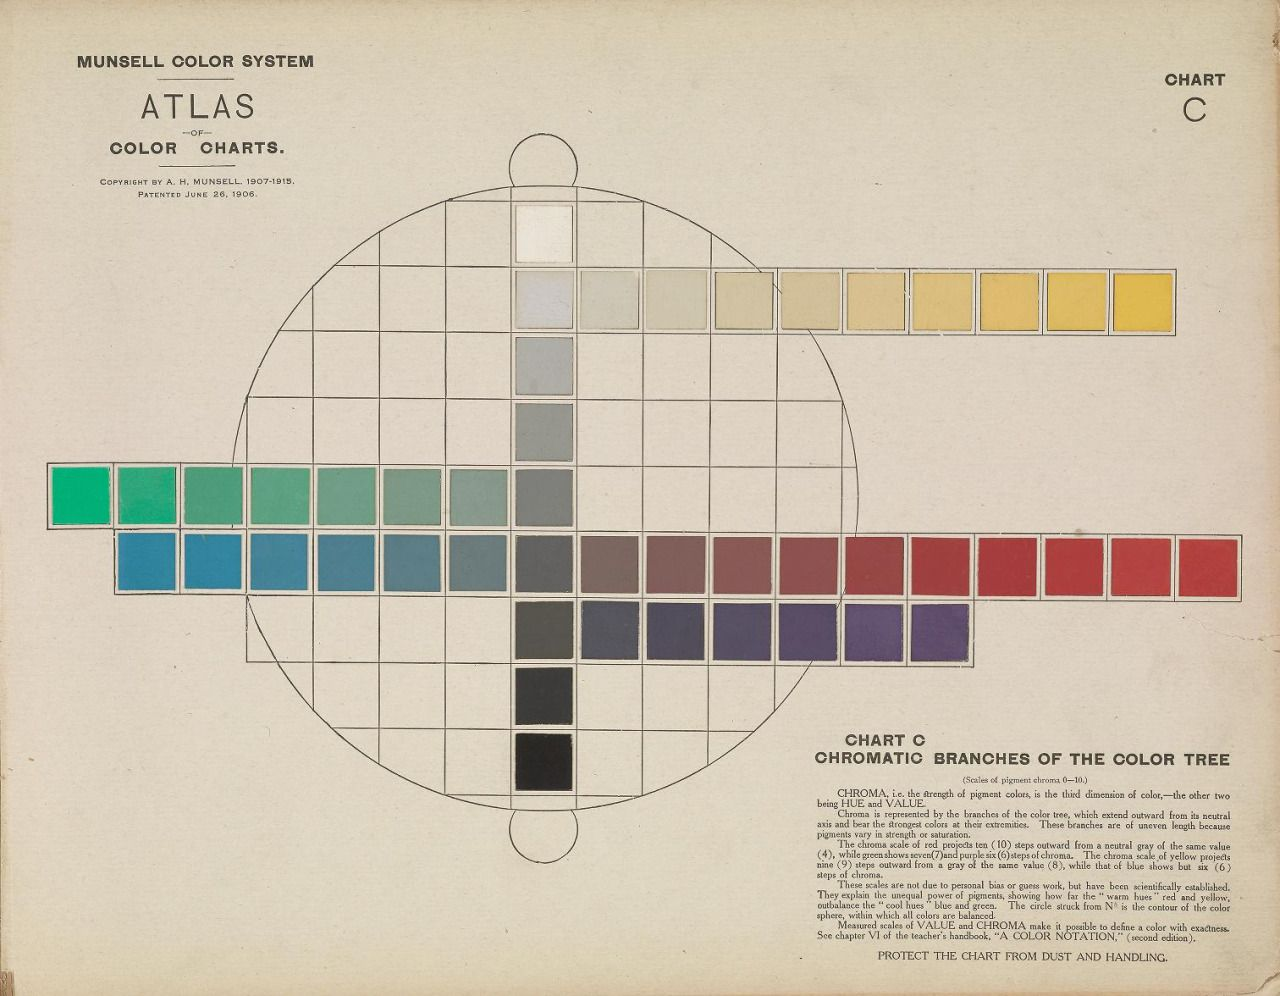 Heaveninawildflower smithsonianlibraries the munsell color smithsonianlibraries the munsell color system was developed by art professor albert munsell as a way to chart color based on hue value and chroma nvjuhfo Images